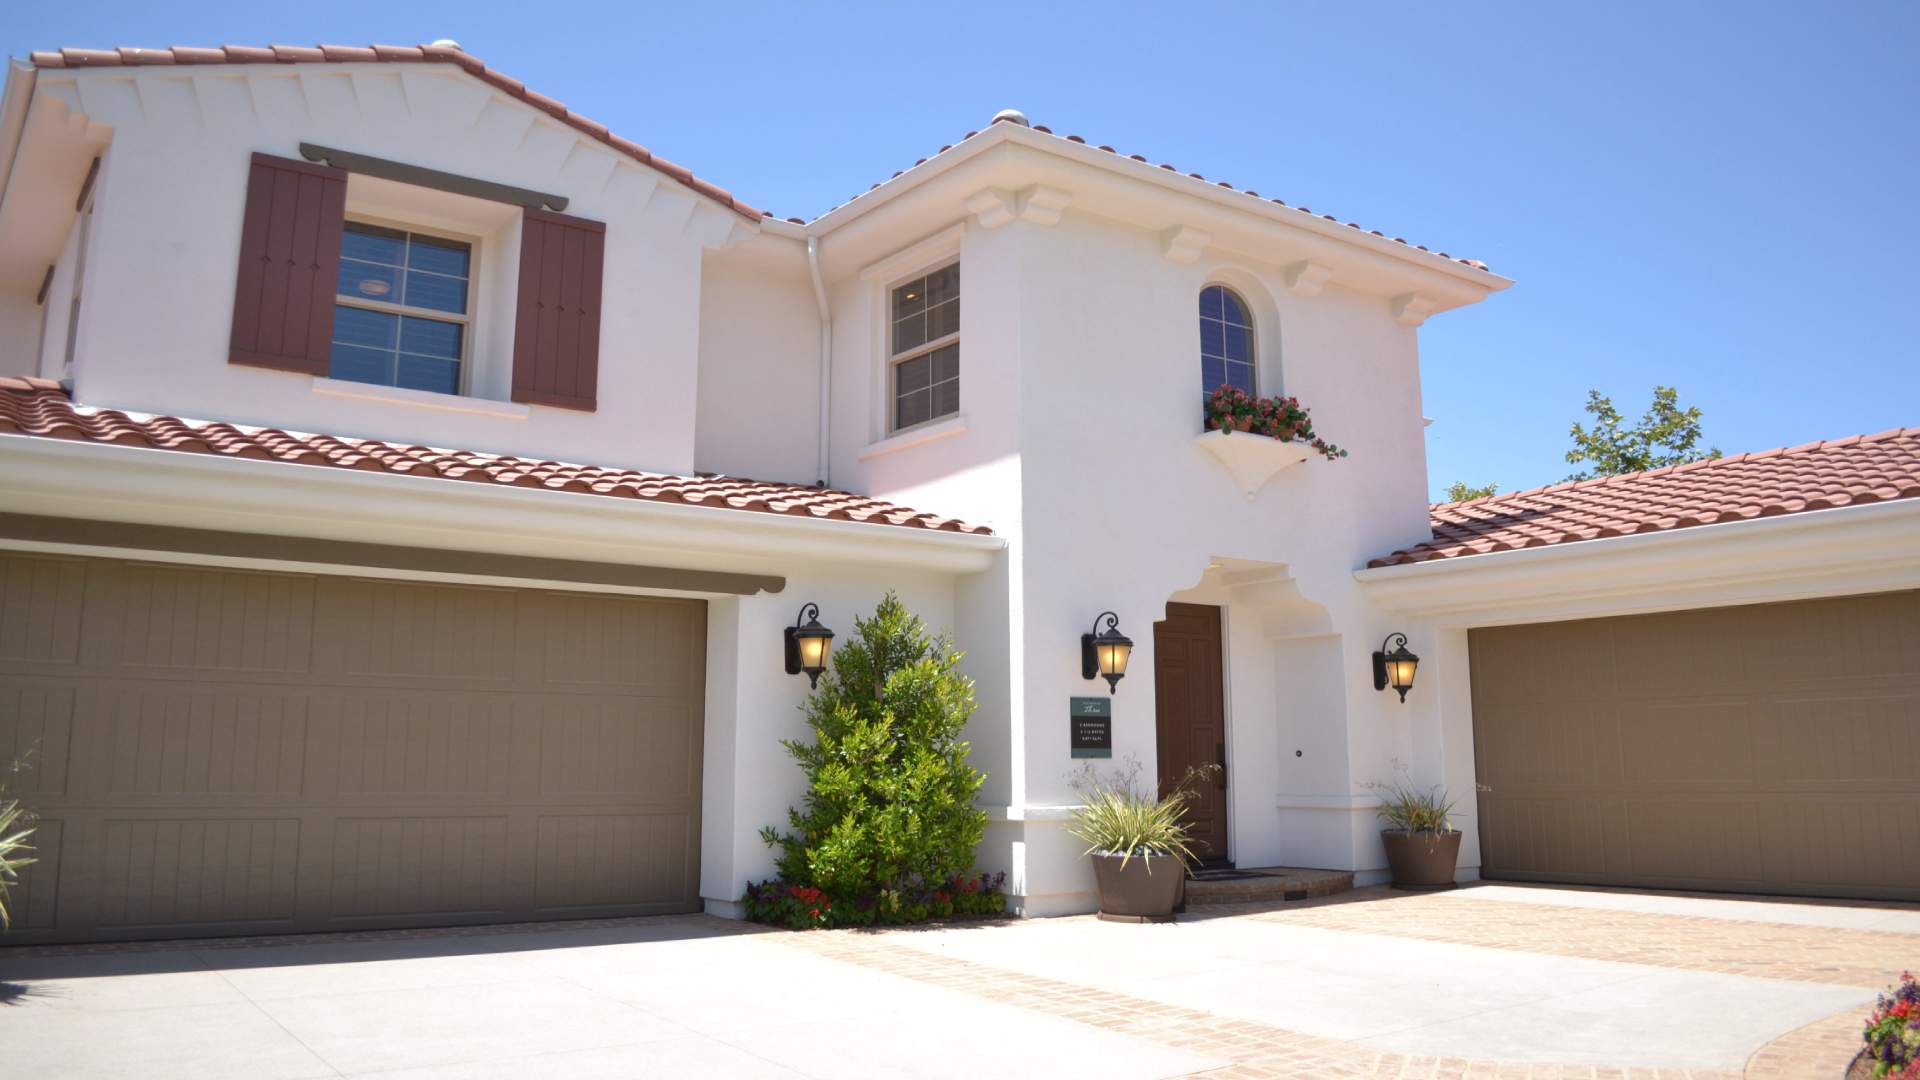 You Don T Need A 20 Downpayment To Buy A Home Mortgage Rates